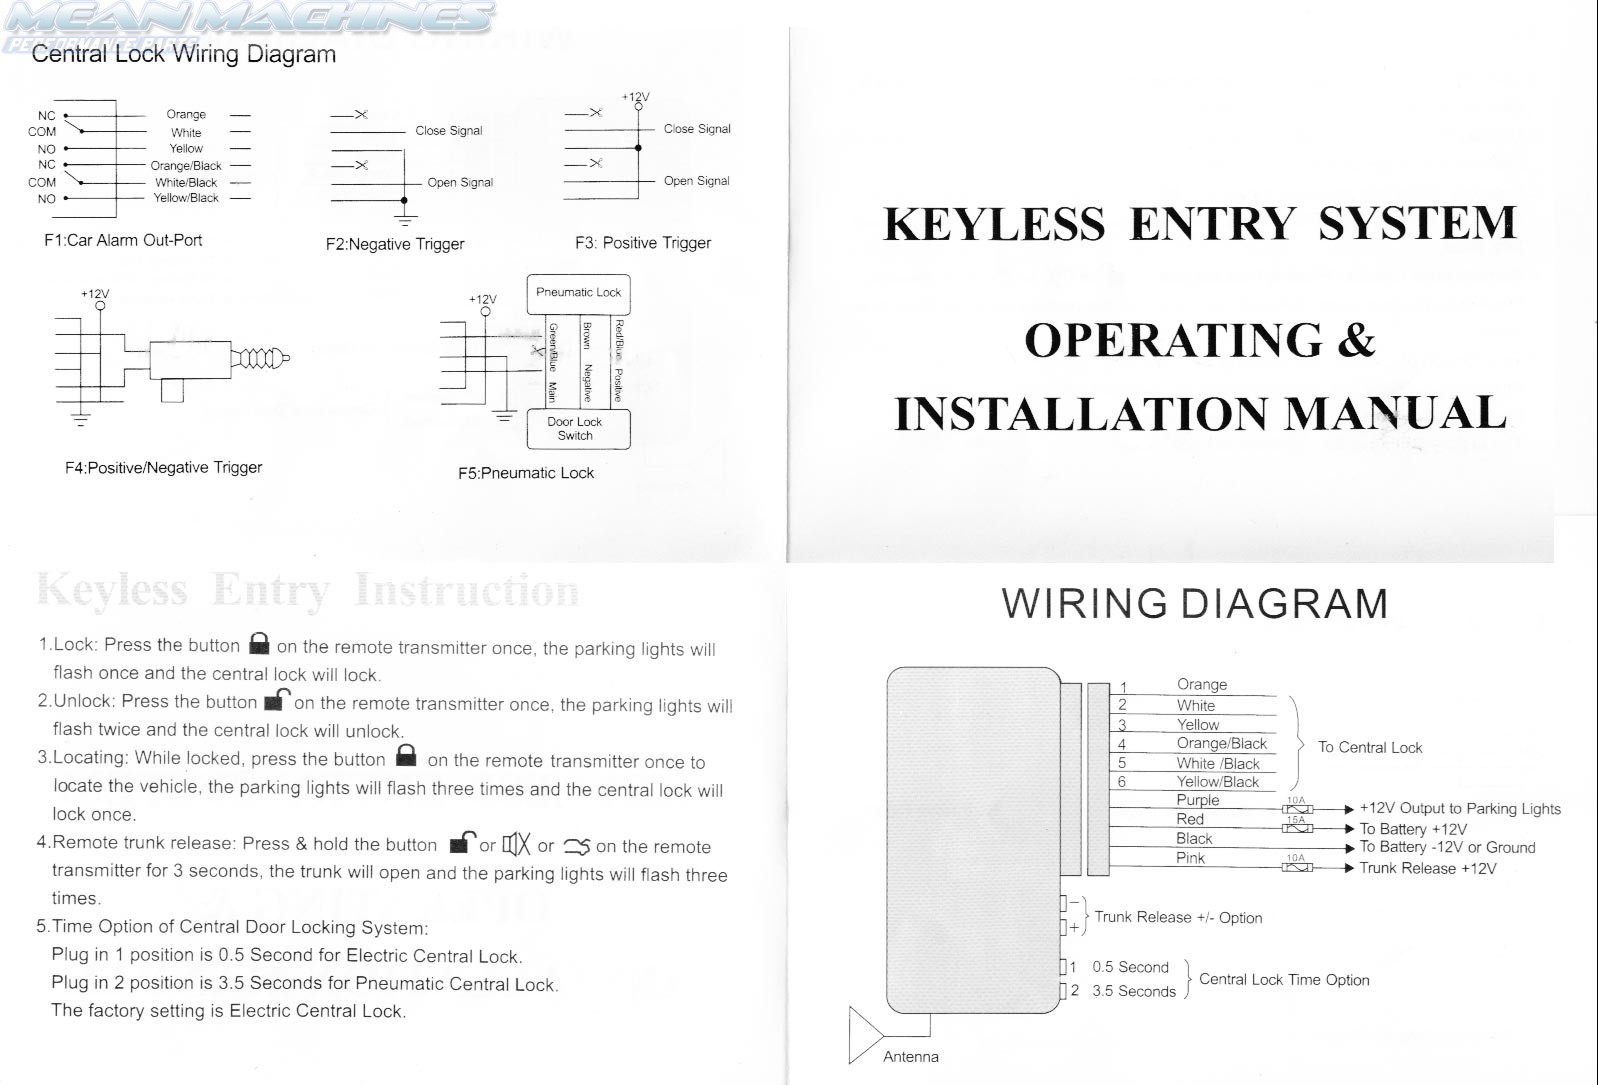 Unusual viper 4806 wiring diagram images electrical and wiring viper 5901 alarm wiring diagram somurich swarovskicordoba Images